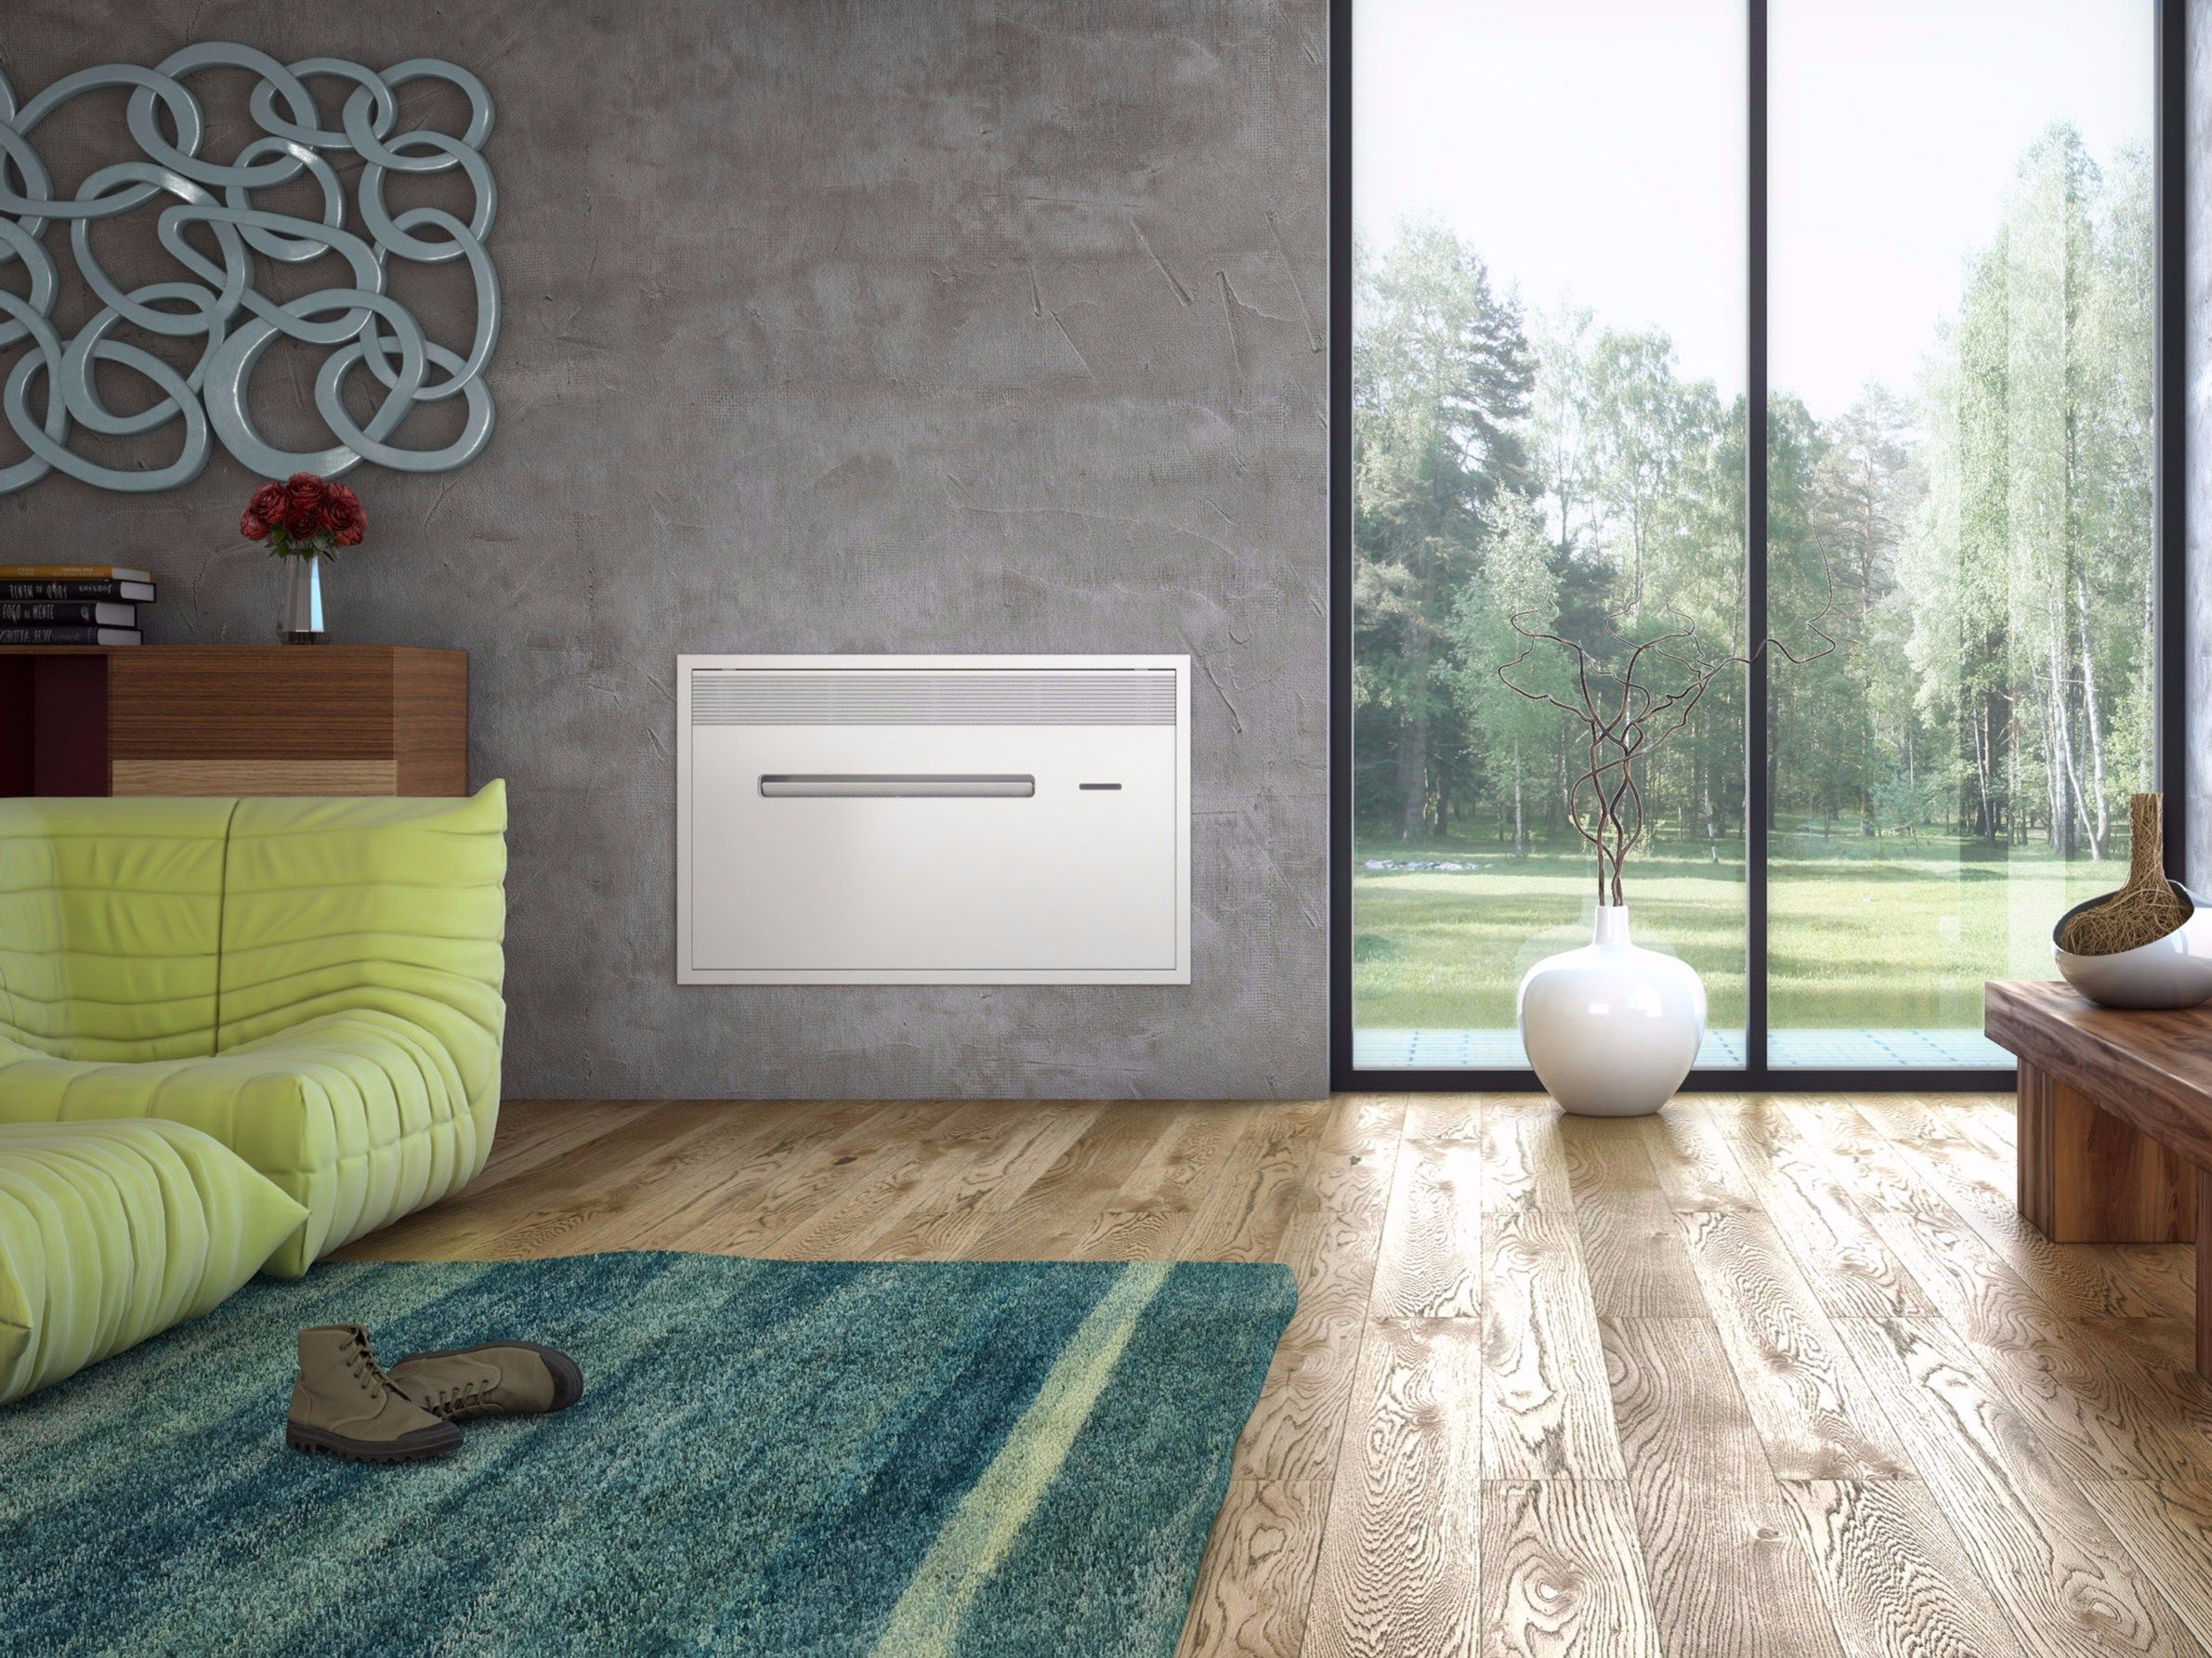 Inverter residential wall mounted UNICO AIR INCASSO by